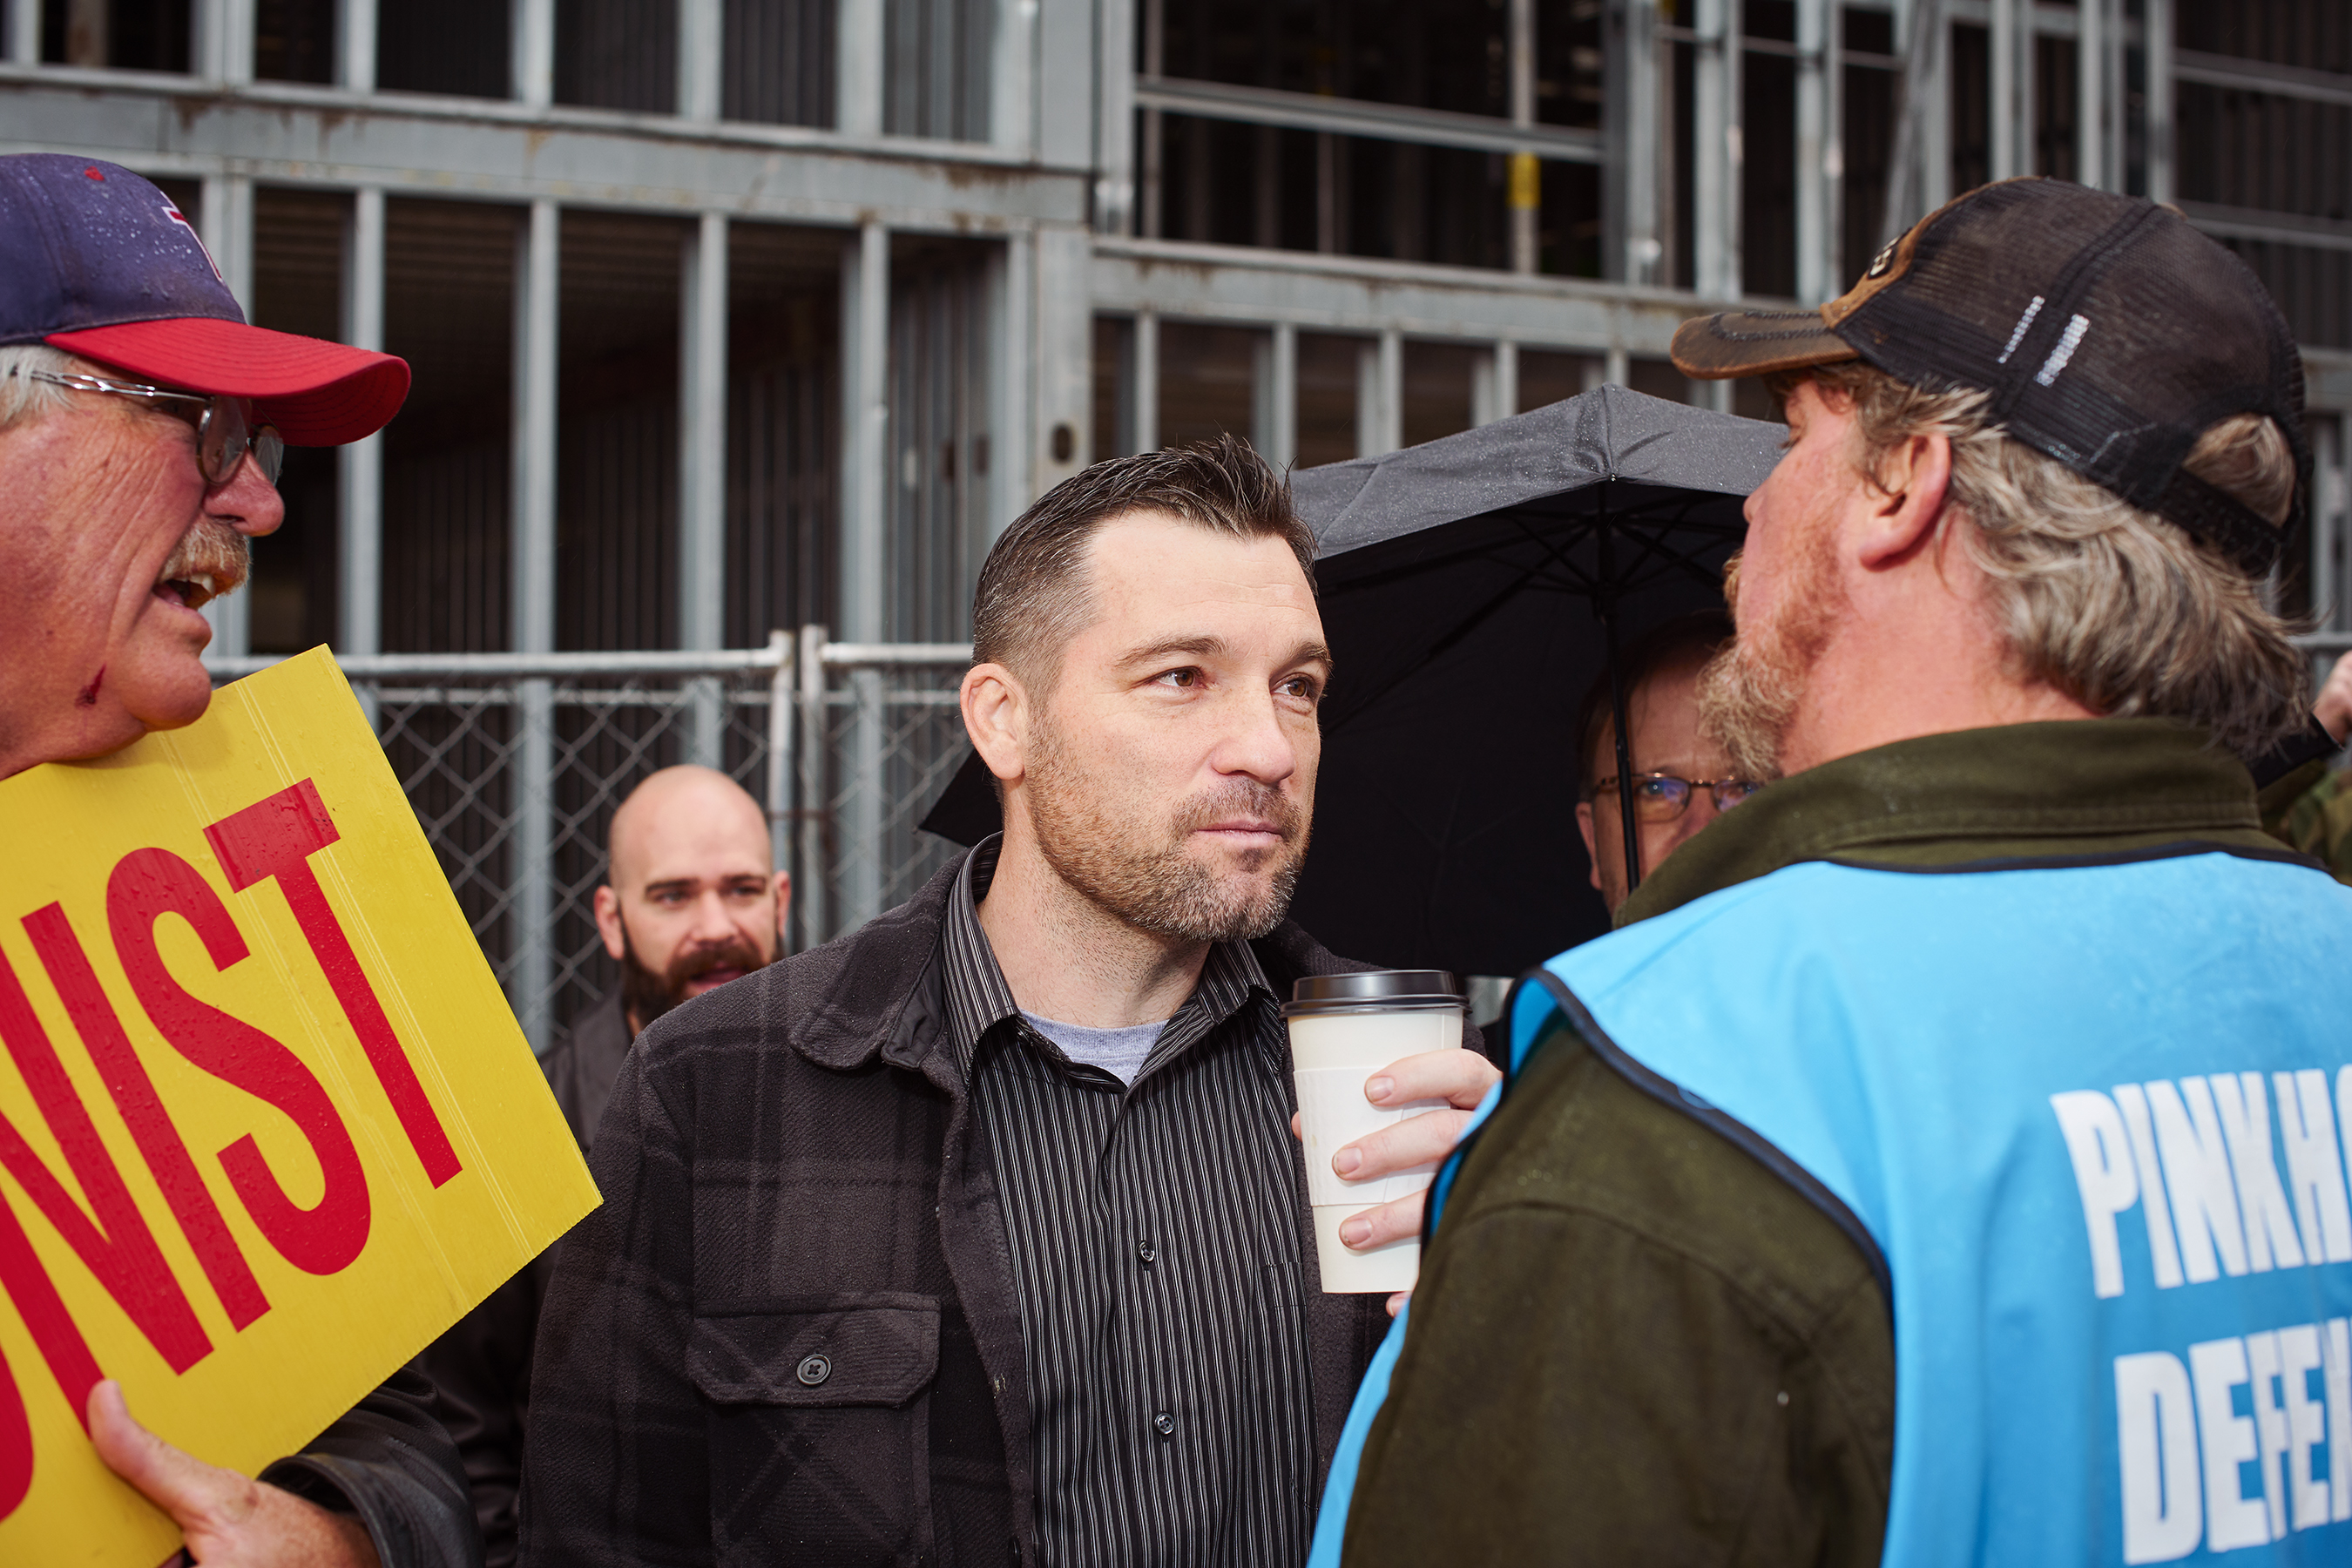 OSA assistant director Jason Storms antagonizes clinic escorts outside the abortion facility. Photo by Finlay MacKay.